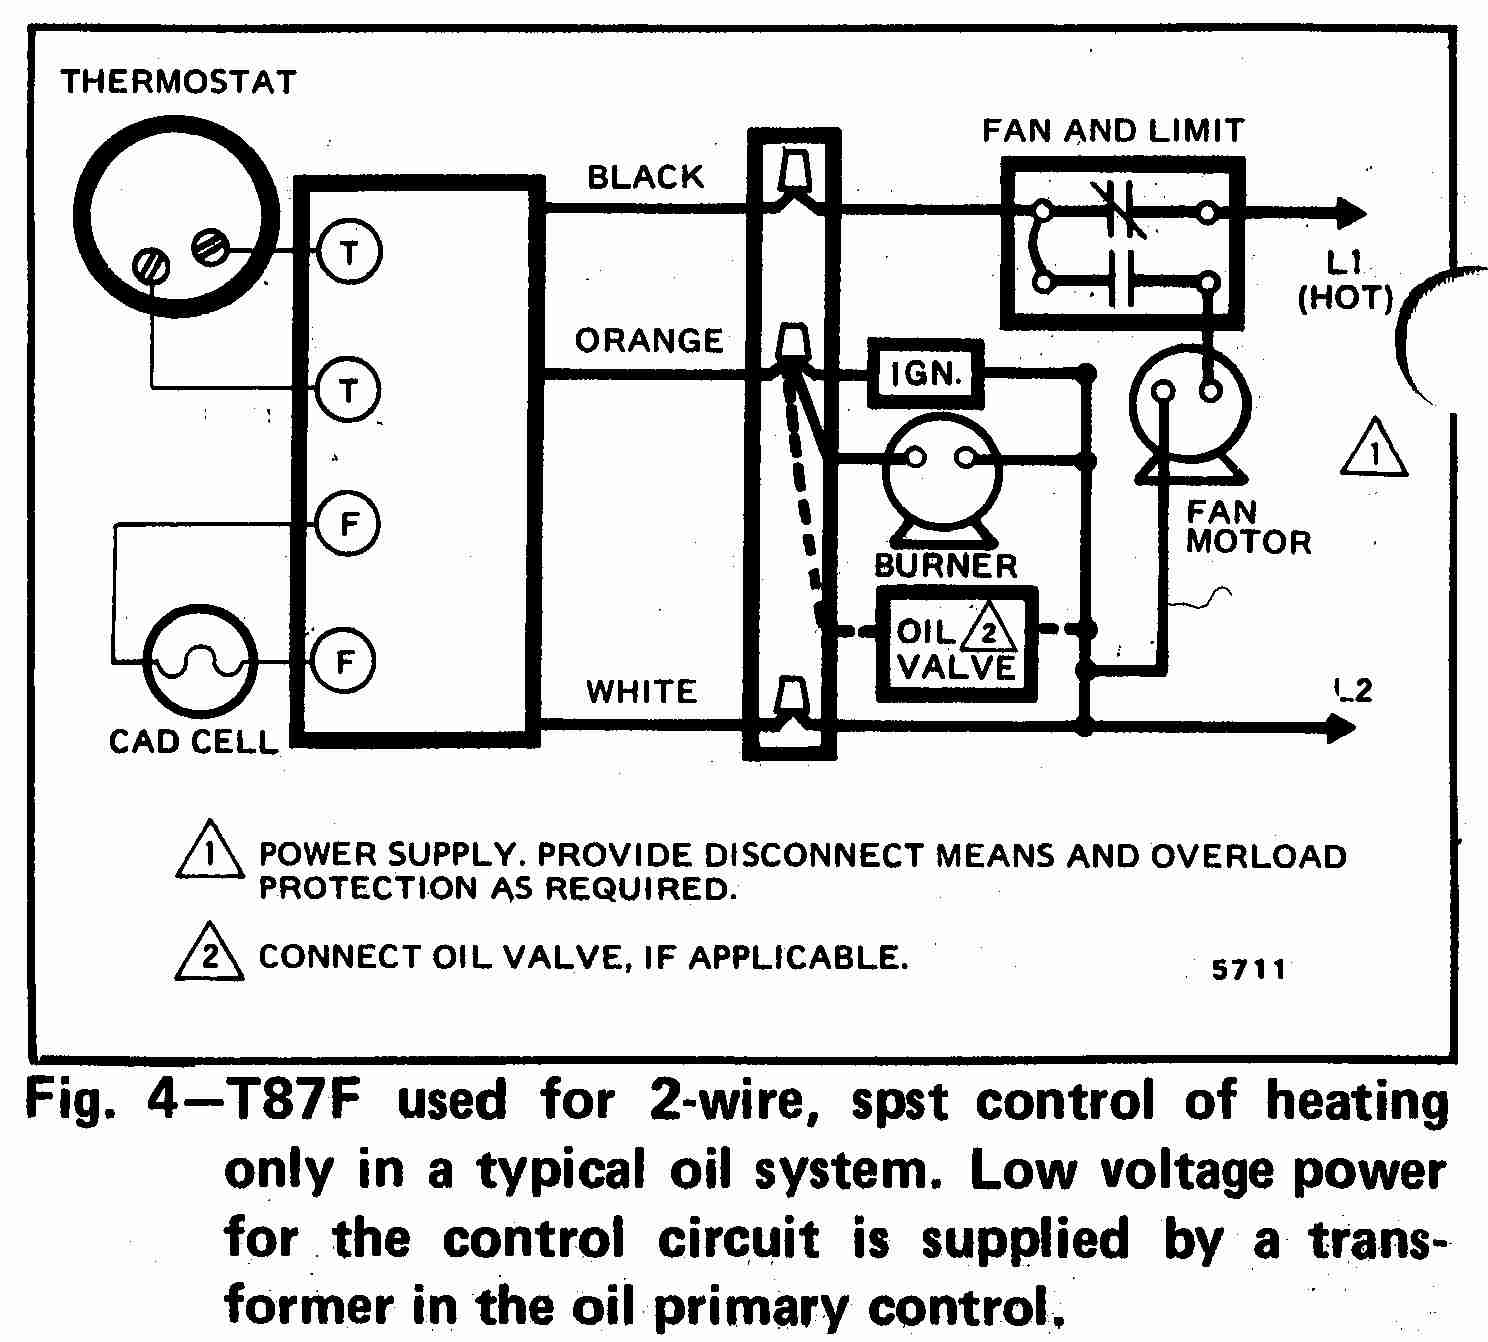 TT_T87F_0002_2W_DJF wiring diagram for heating system dryer wiring diagram \u2022 free  at gsmportal.co